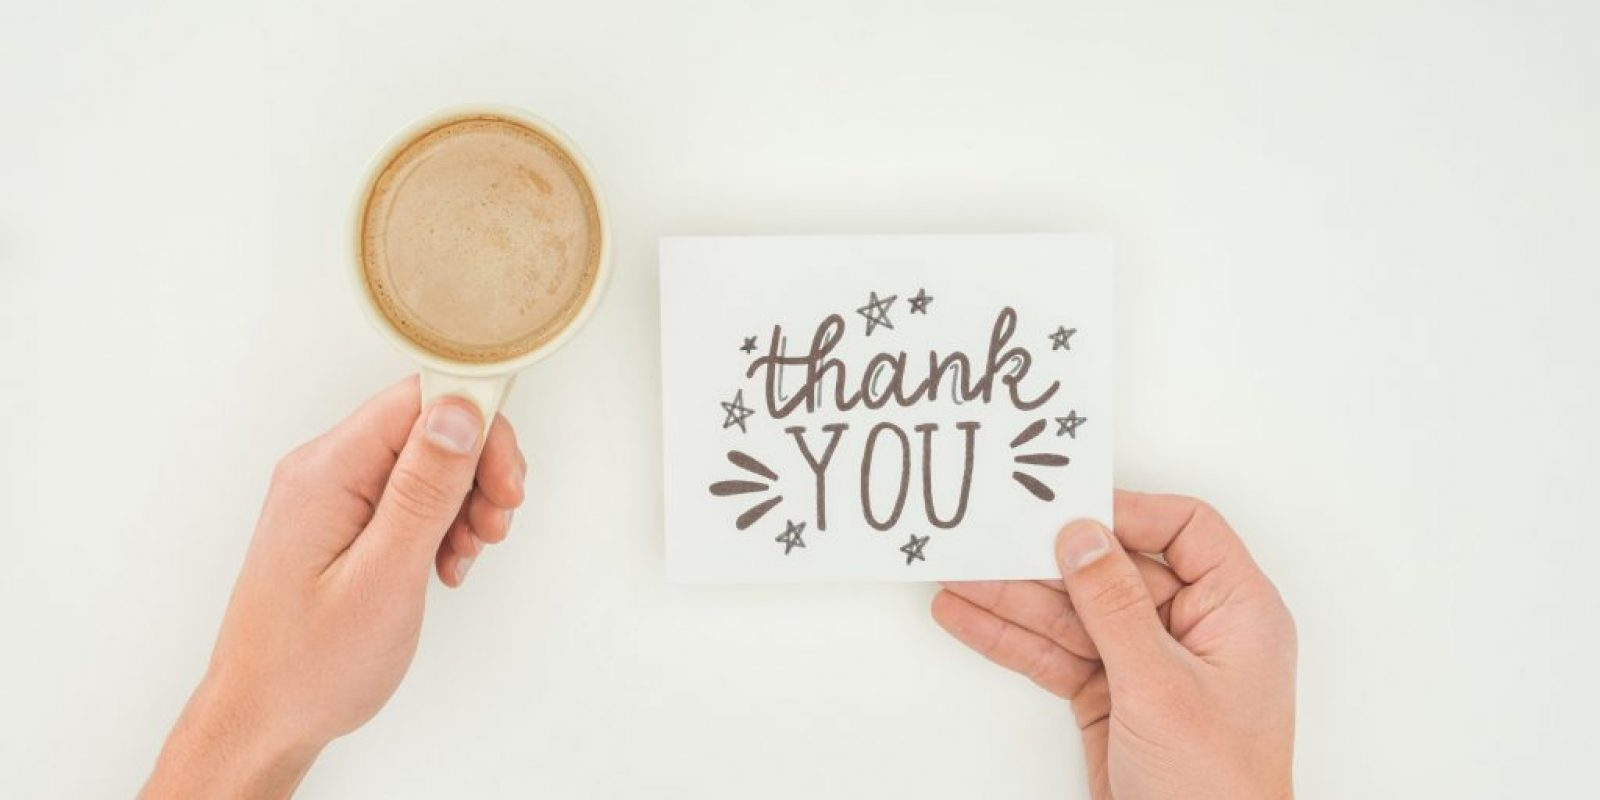 How Gratitude Makes You Successful